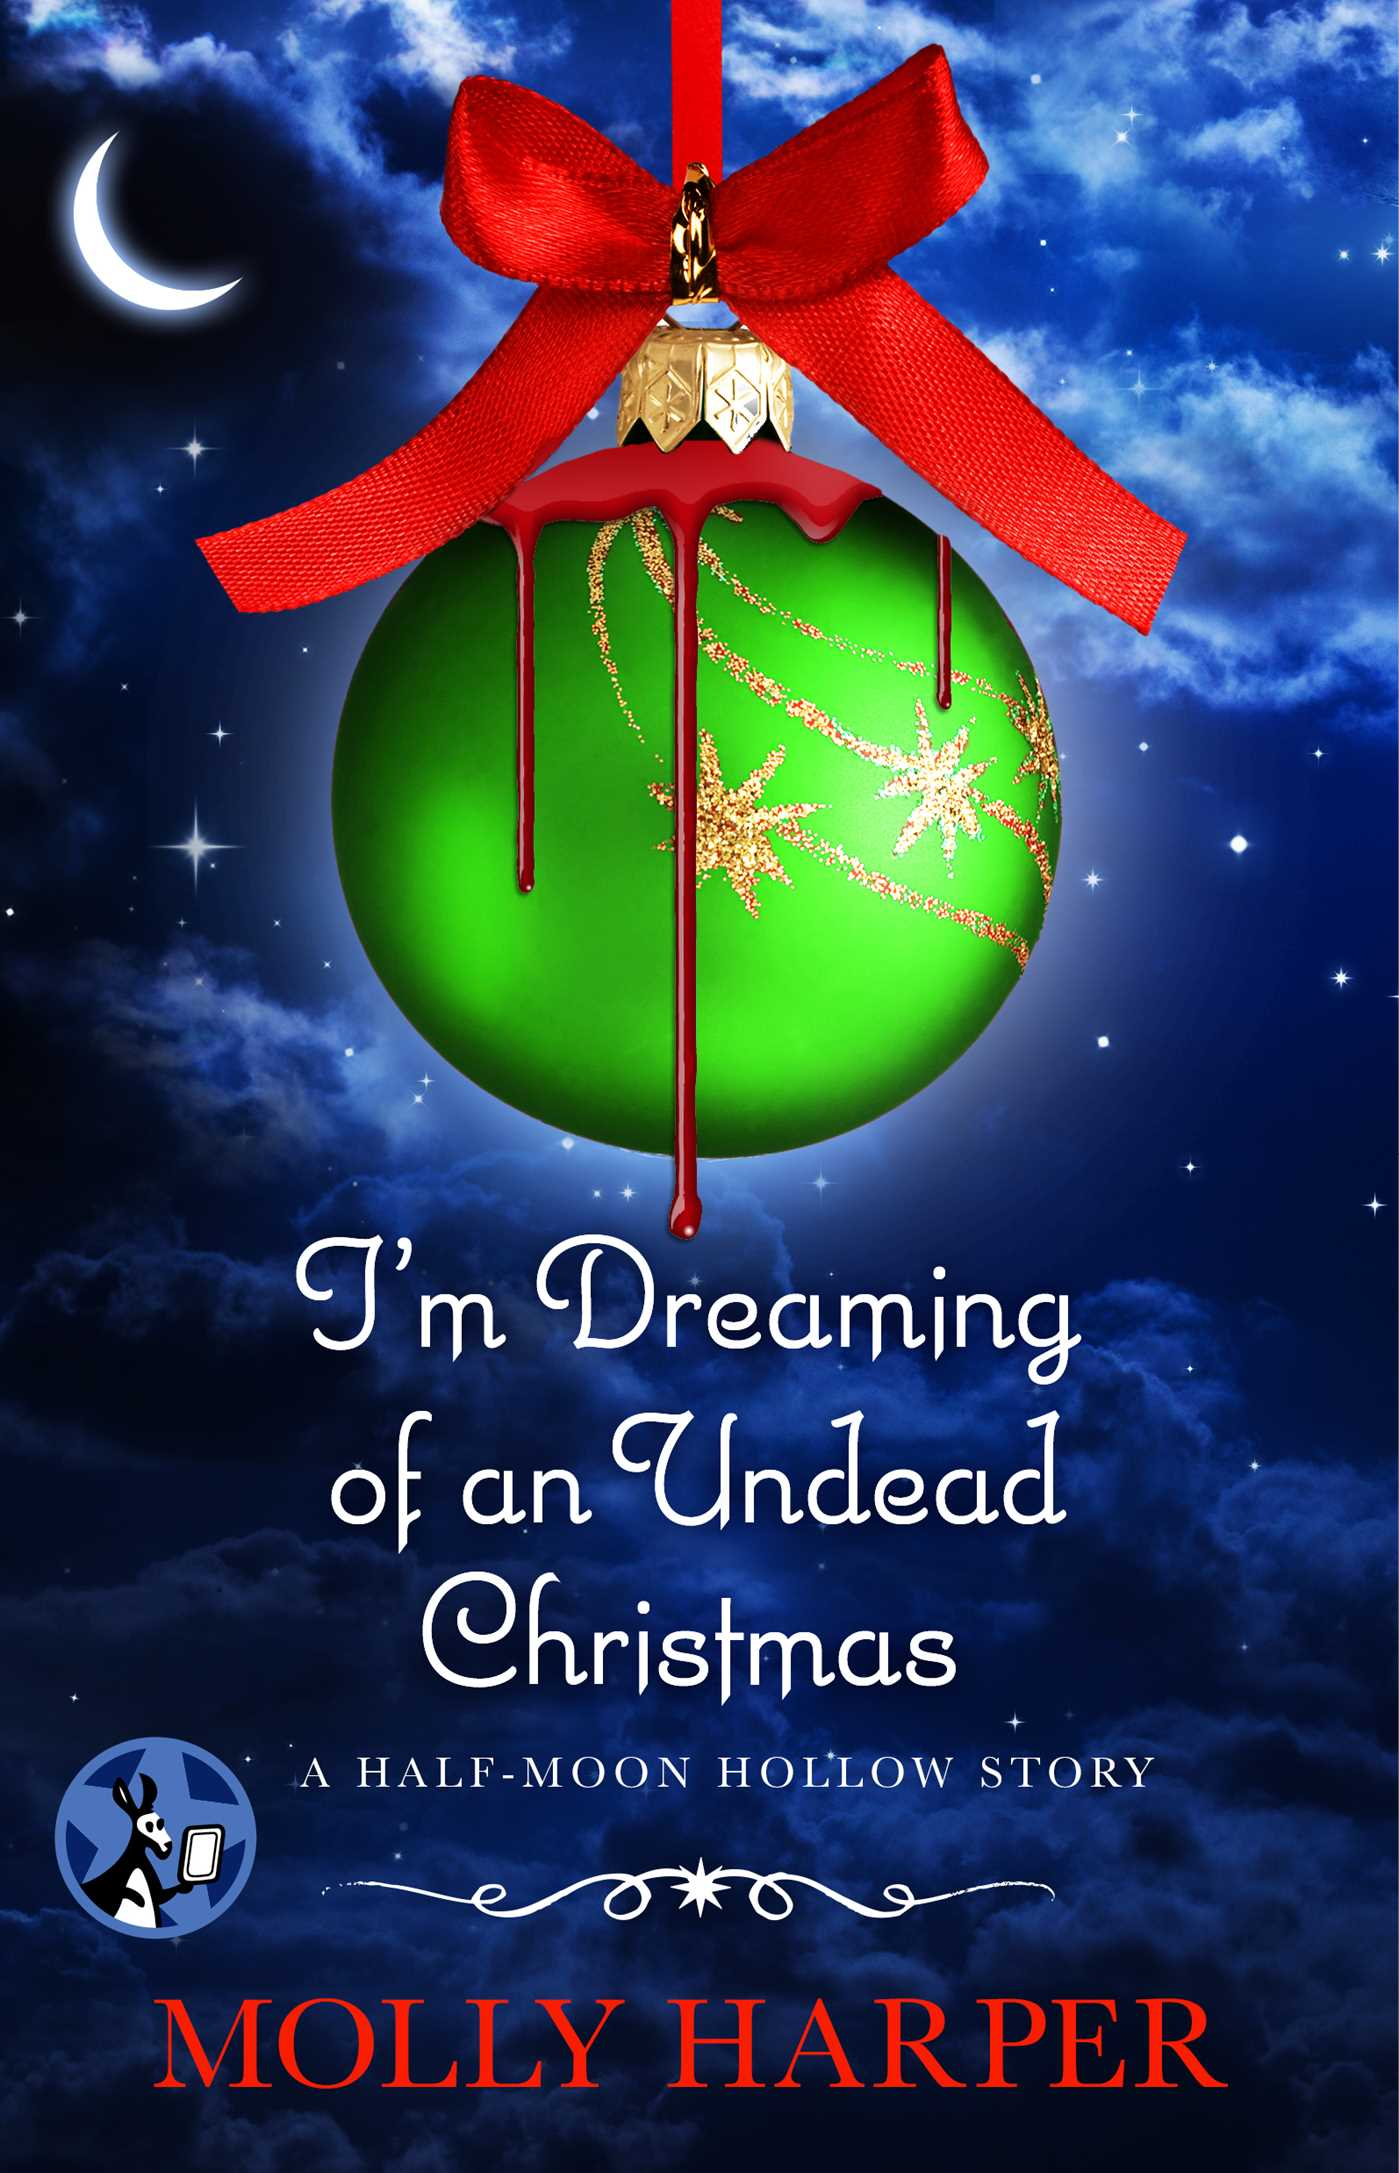 Im dreaming of an undead christmas 9781476784540 hr